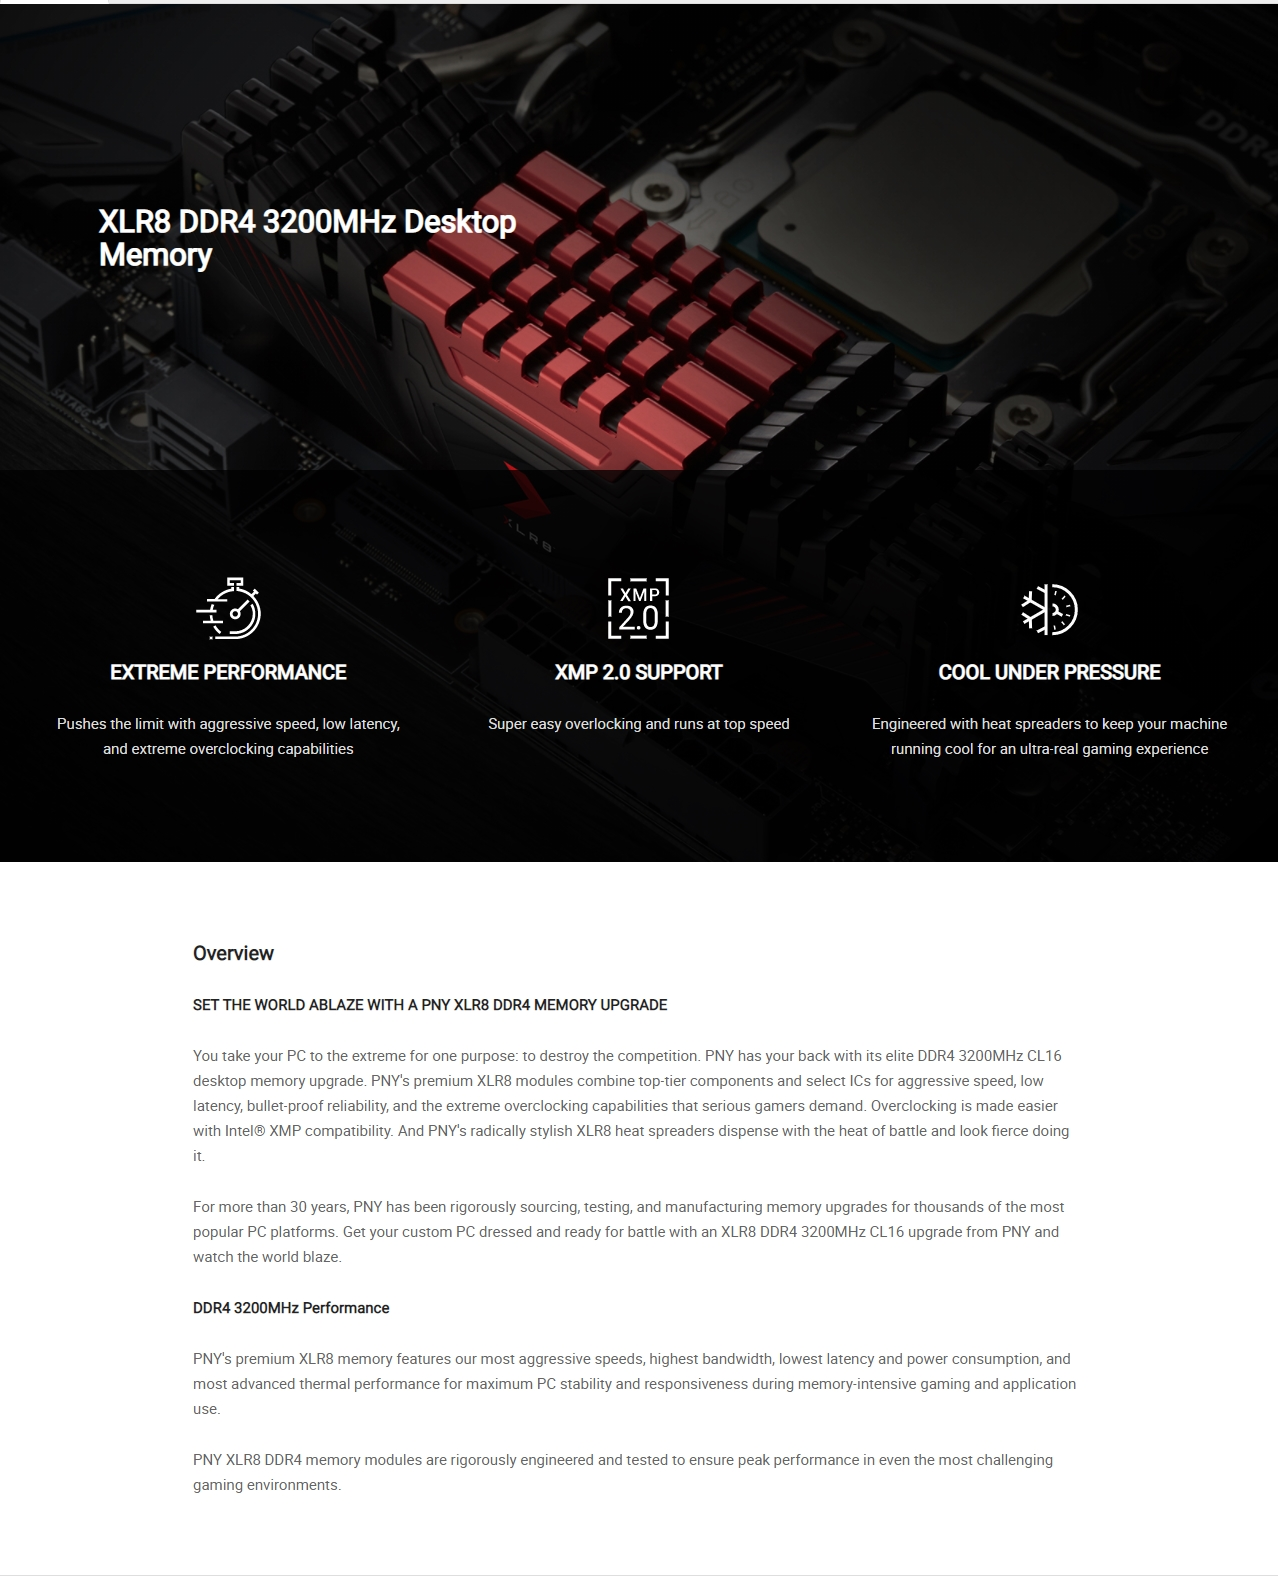 A large marketing image providing additional information about the product PNY XLR8 16GB (2x8GB) DDR4 C16 3200MHz - Additional alt info not provided